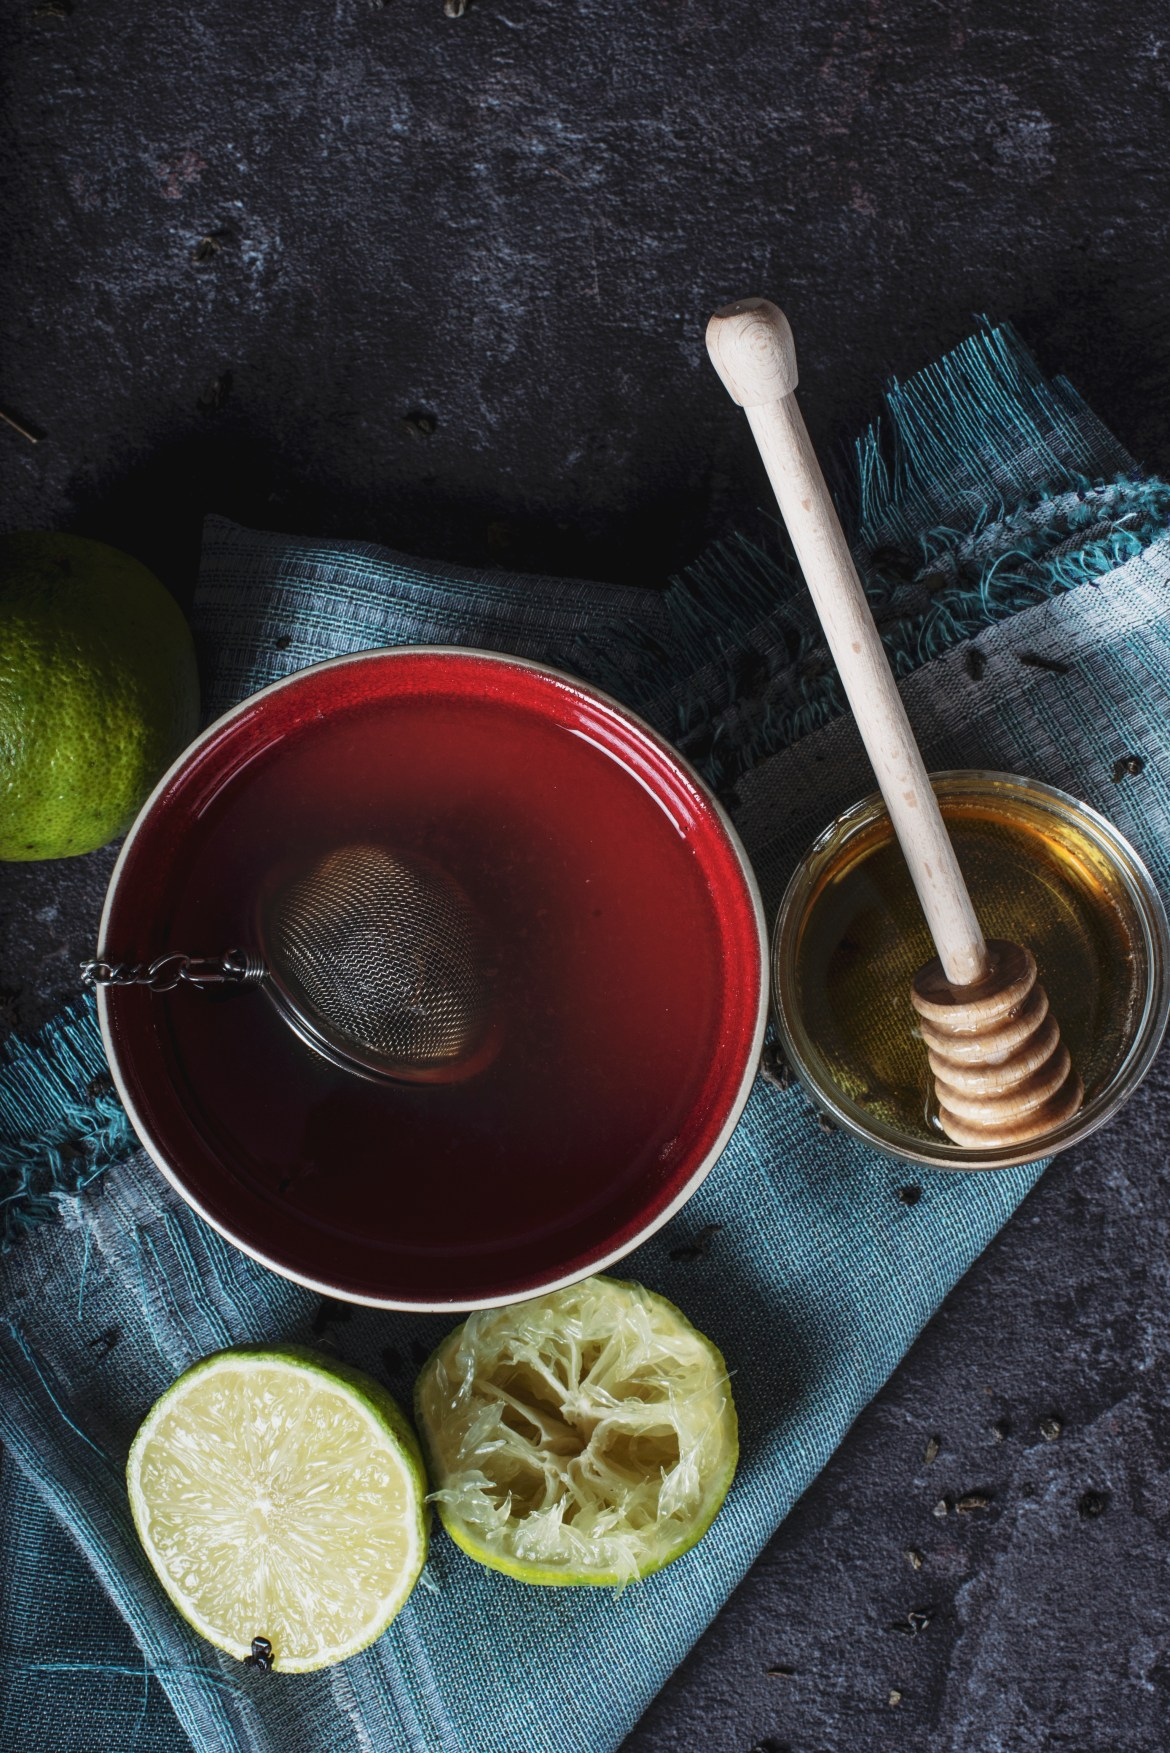 Detox Teas for weight loss are pretty popular thanks to Instagram. But they won't give you the fat burning and cleansing results you desire. This is why.